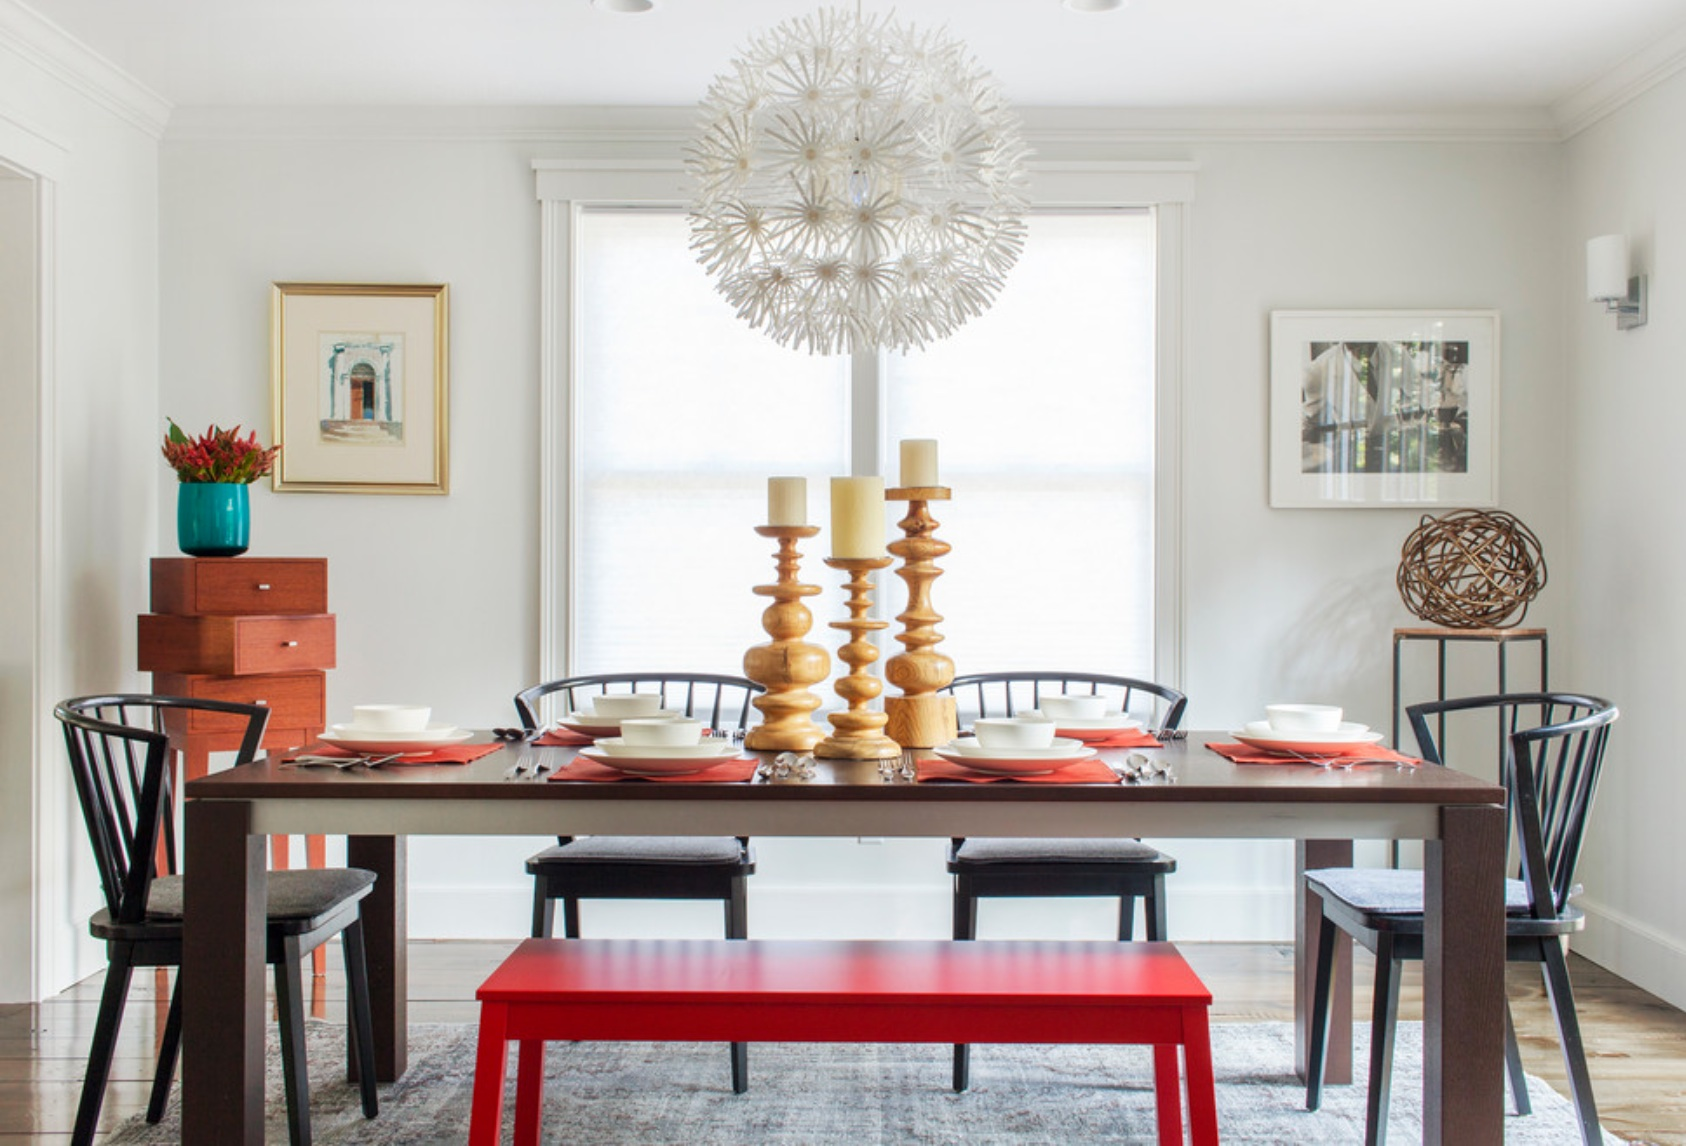 Houzz Home Design: Home-Remodeling App Houzz Brings Home $35 Million